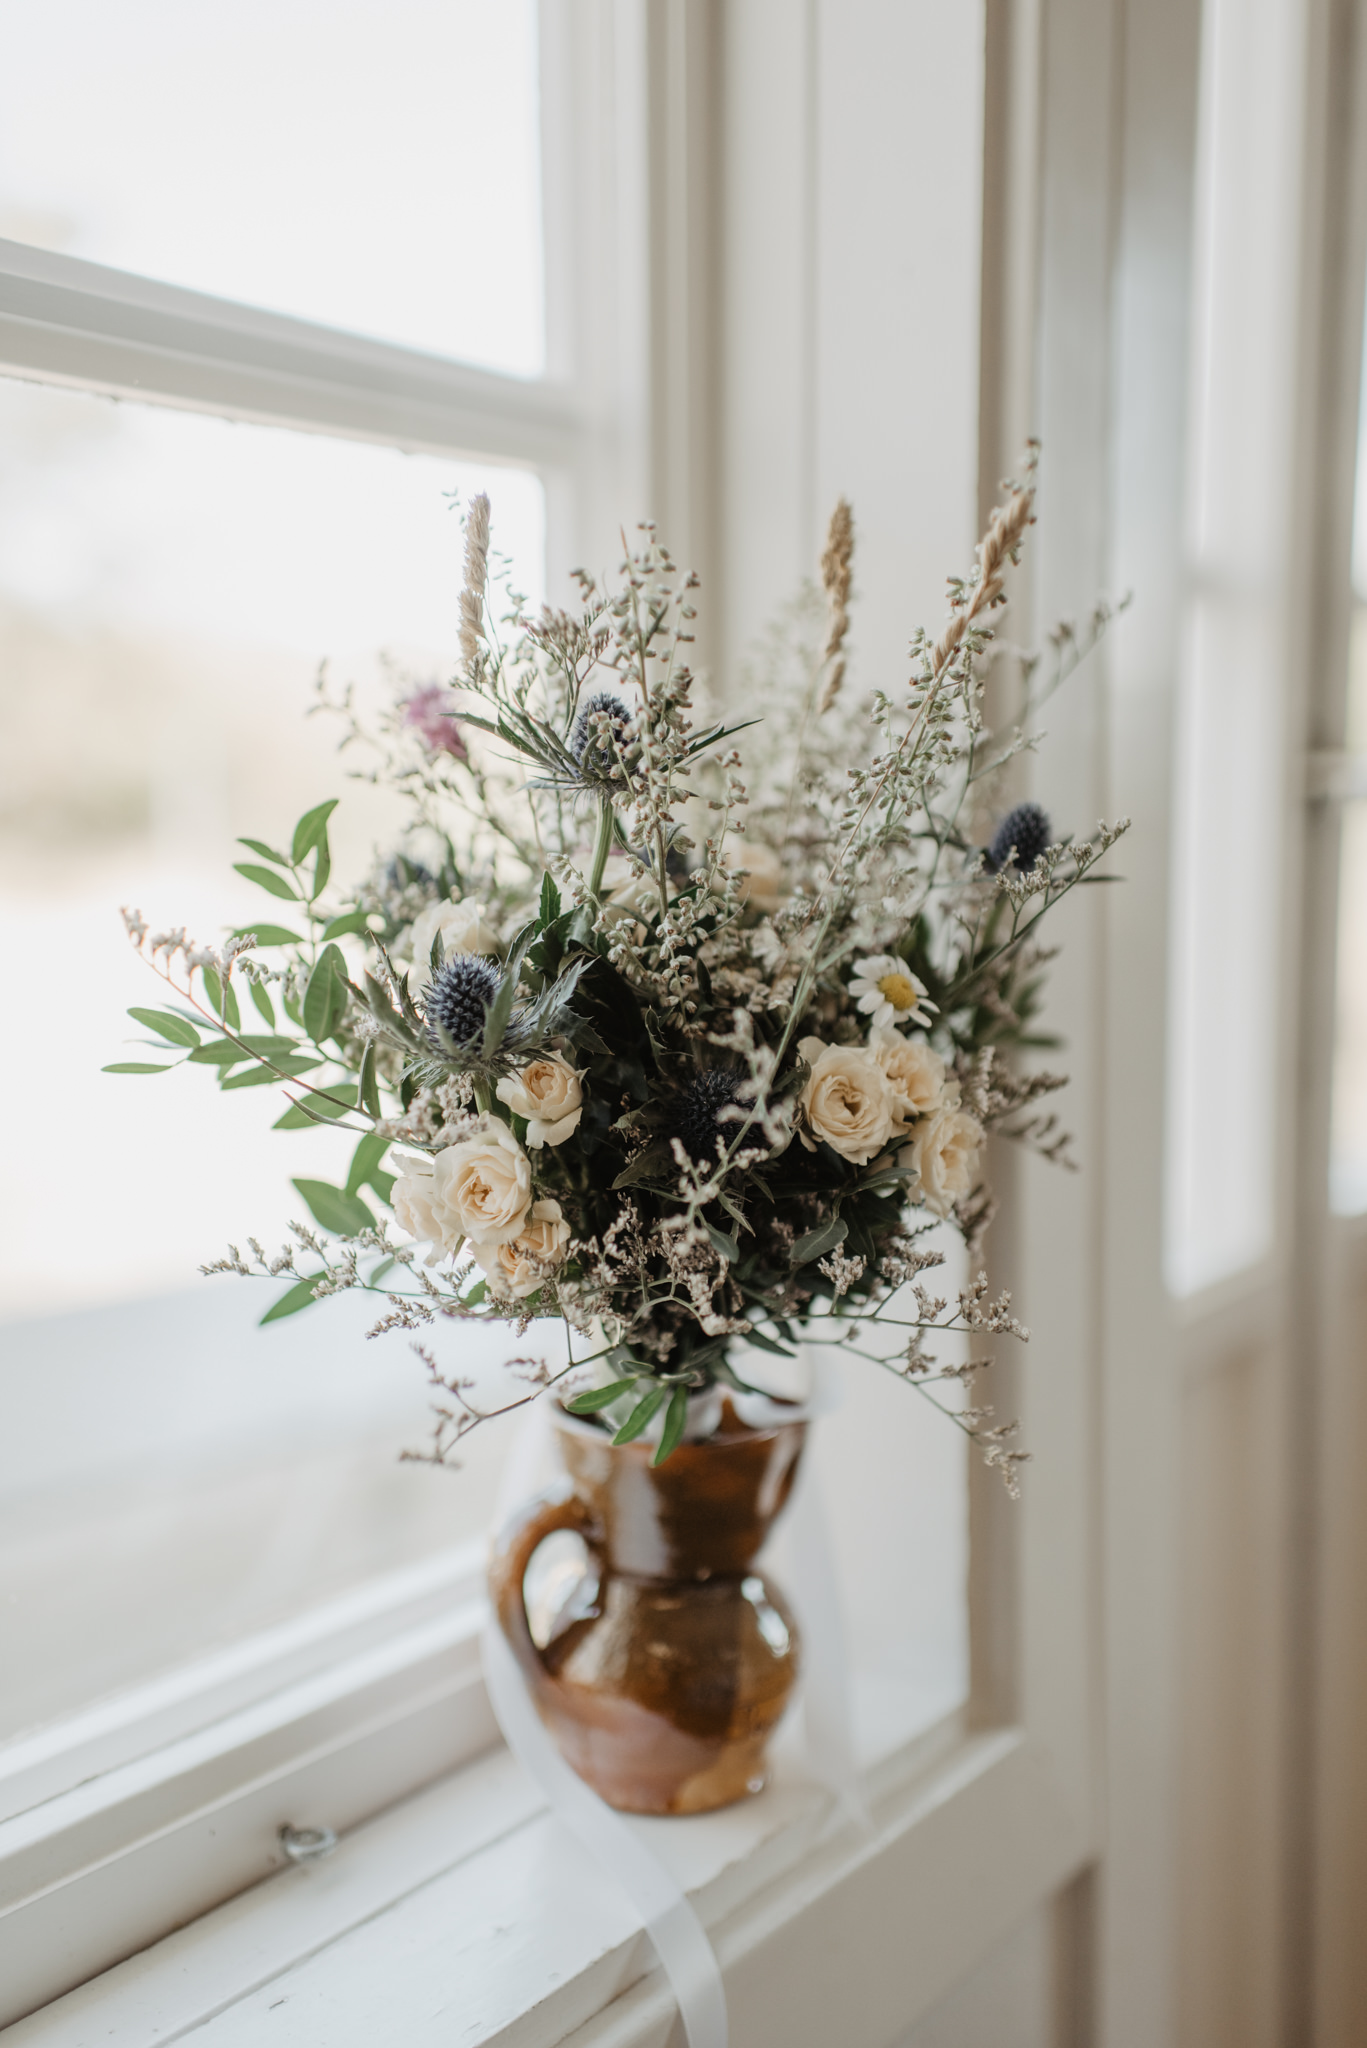 Chic small wedding bouquet with dried flowers